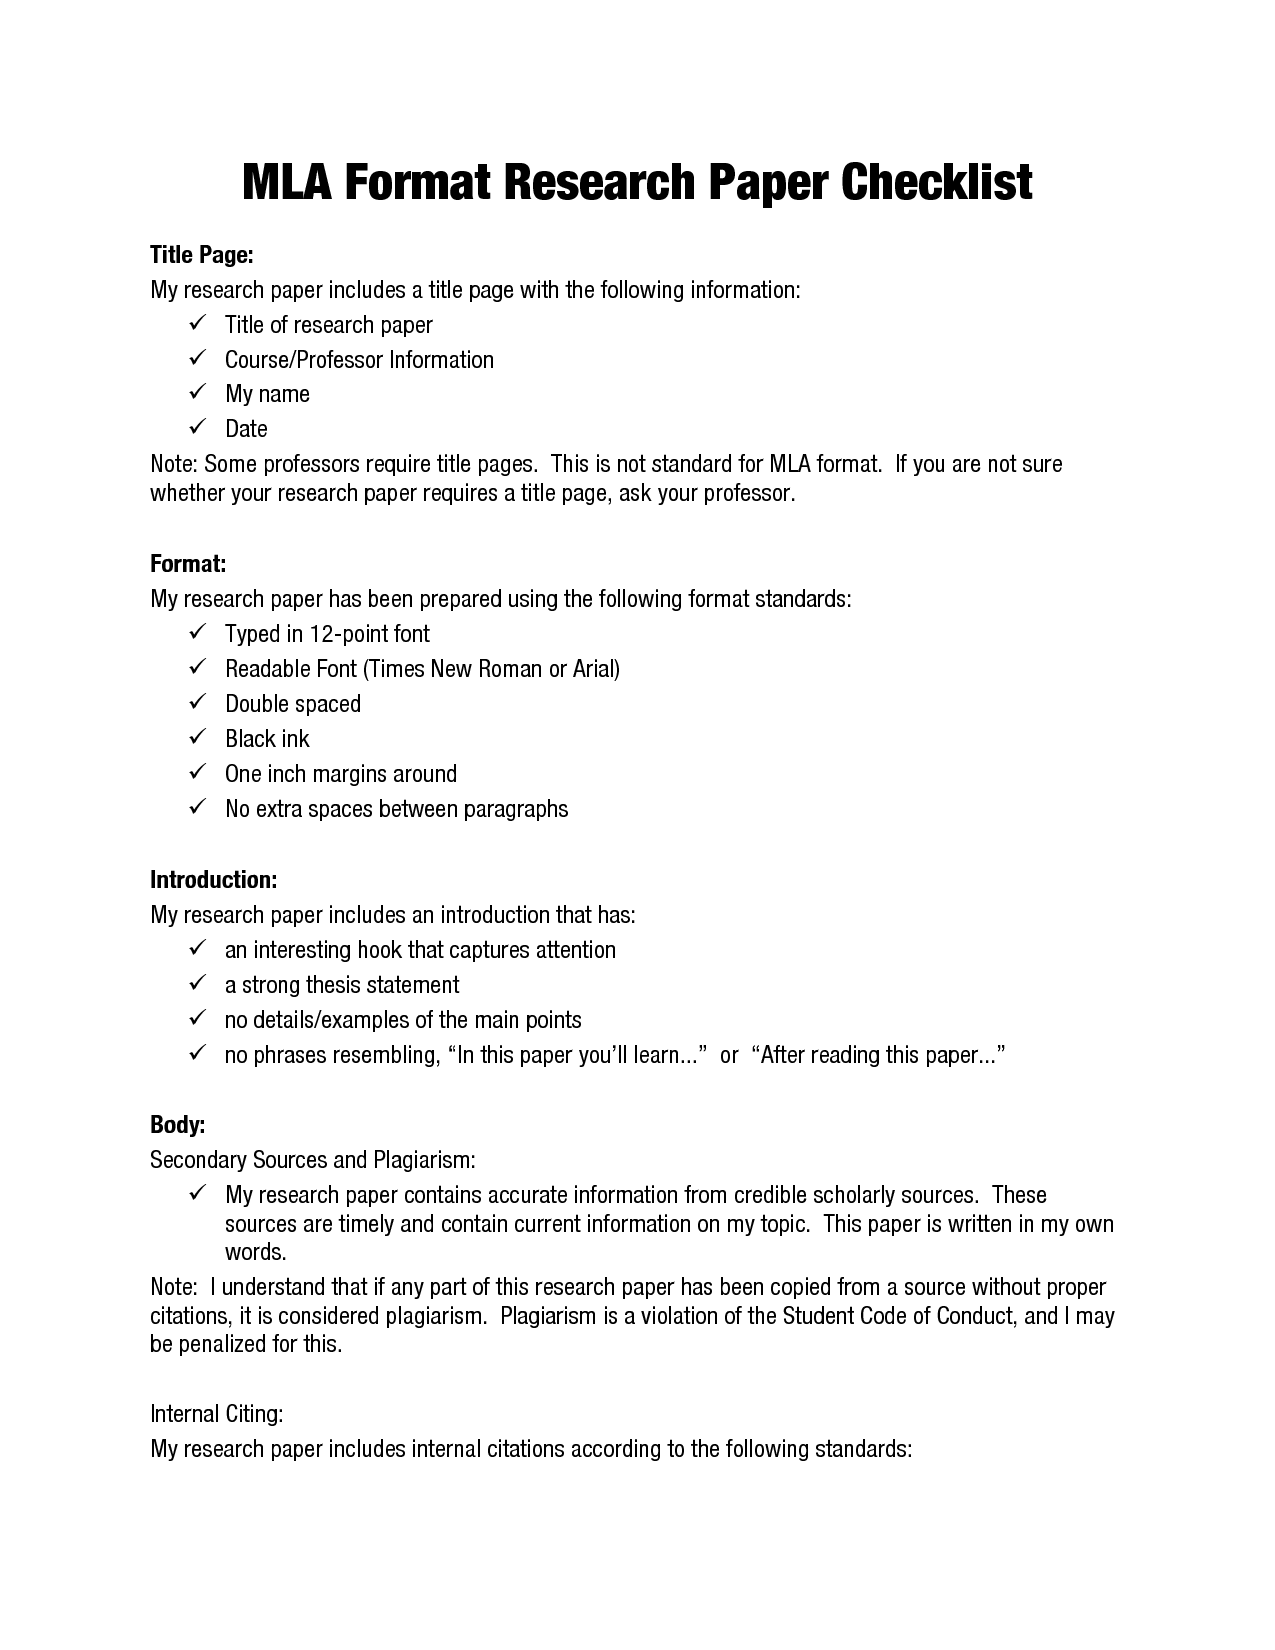 Proper Essay Format Mla Format Research Papers  Mla Format Research Paper Checklist